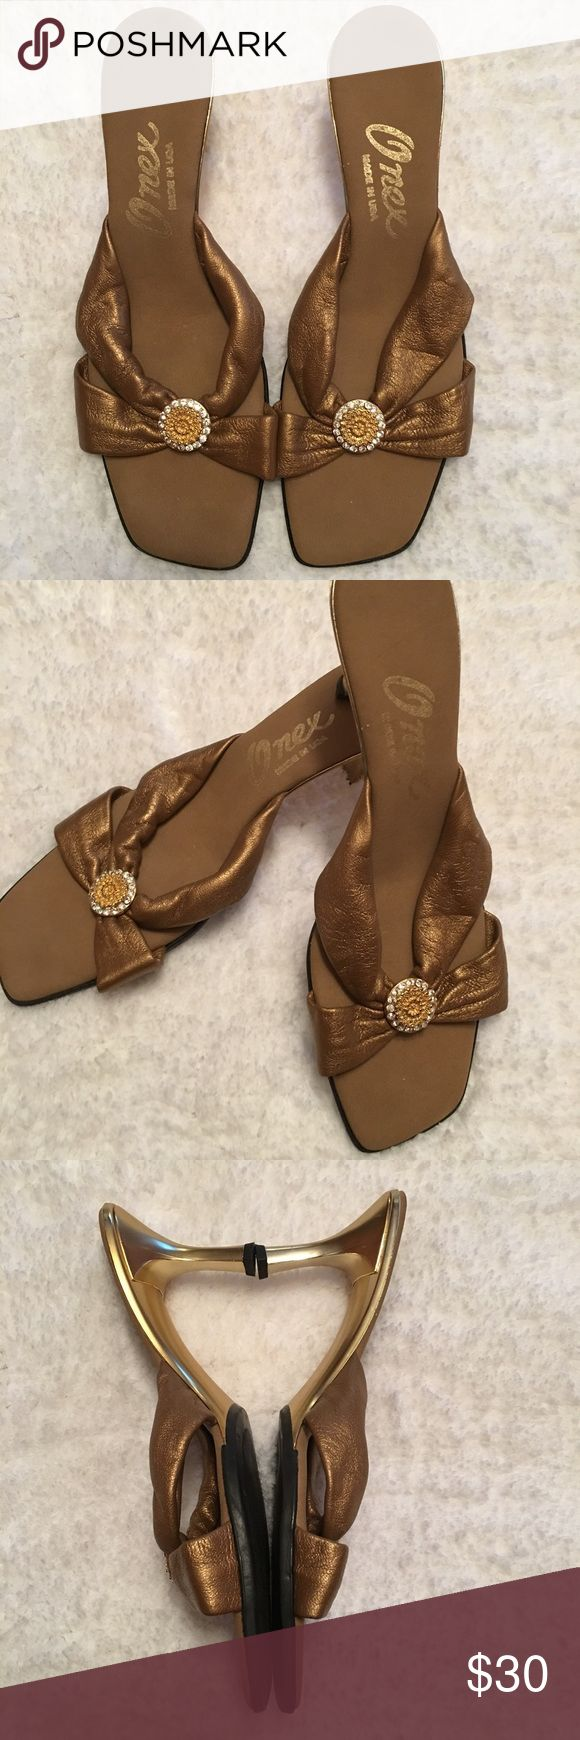 Beautiful Onex Bronx Jeweled Sandals Rhinestone accented Onex sandals size 10/40, in great condition Onex Shoes Heels